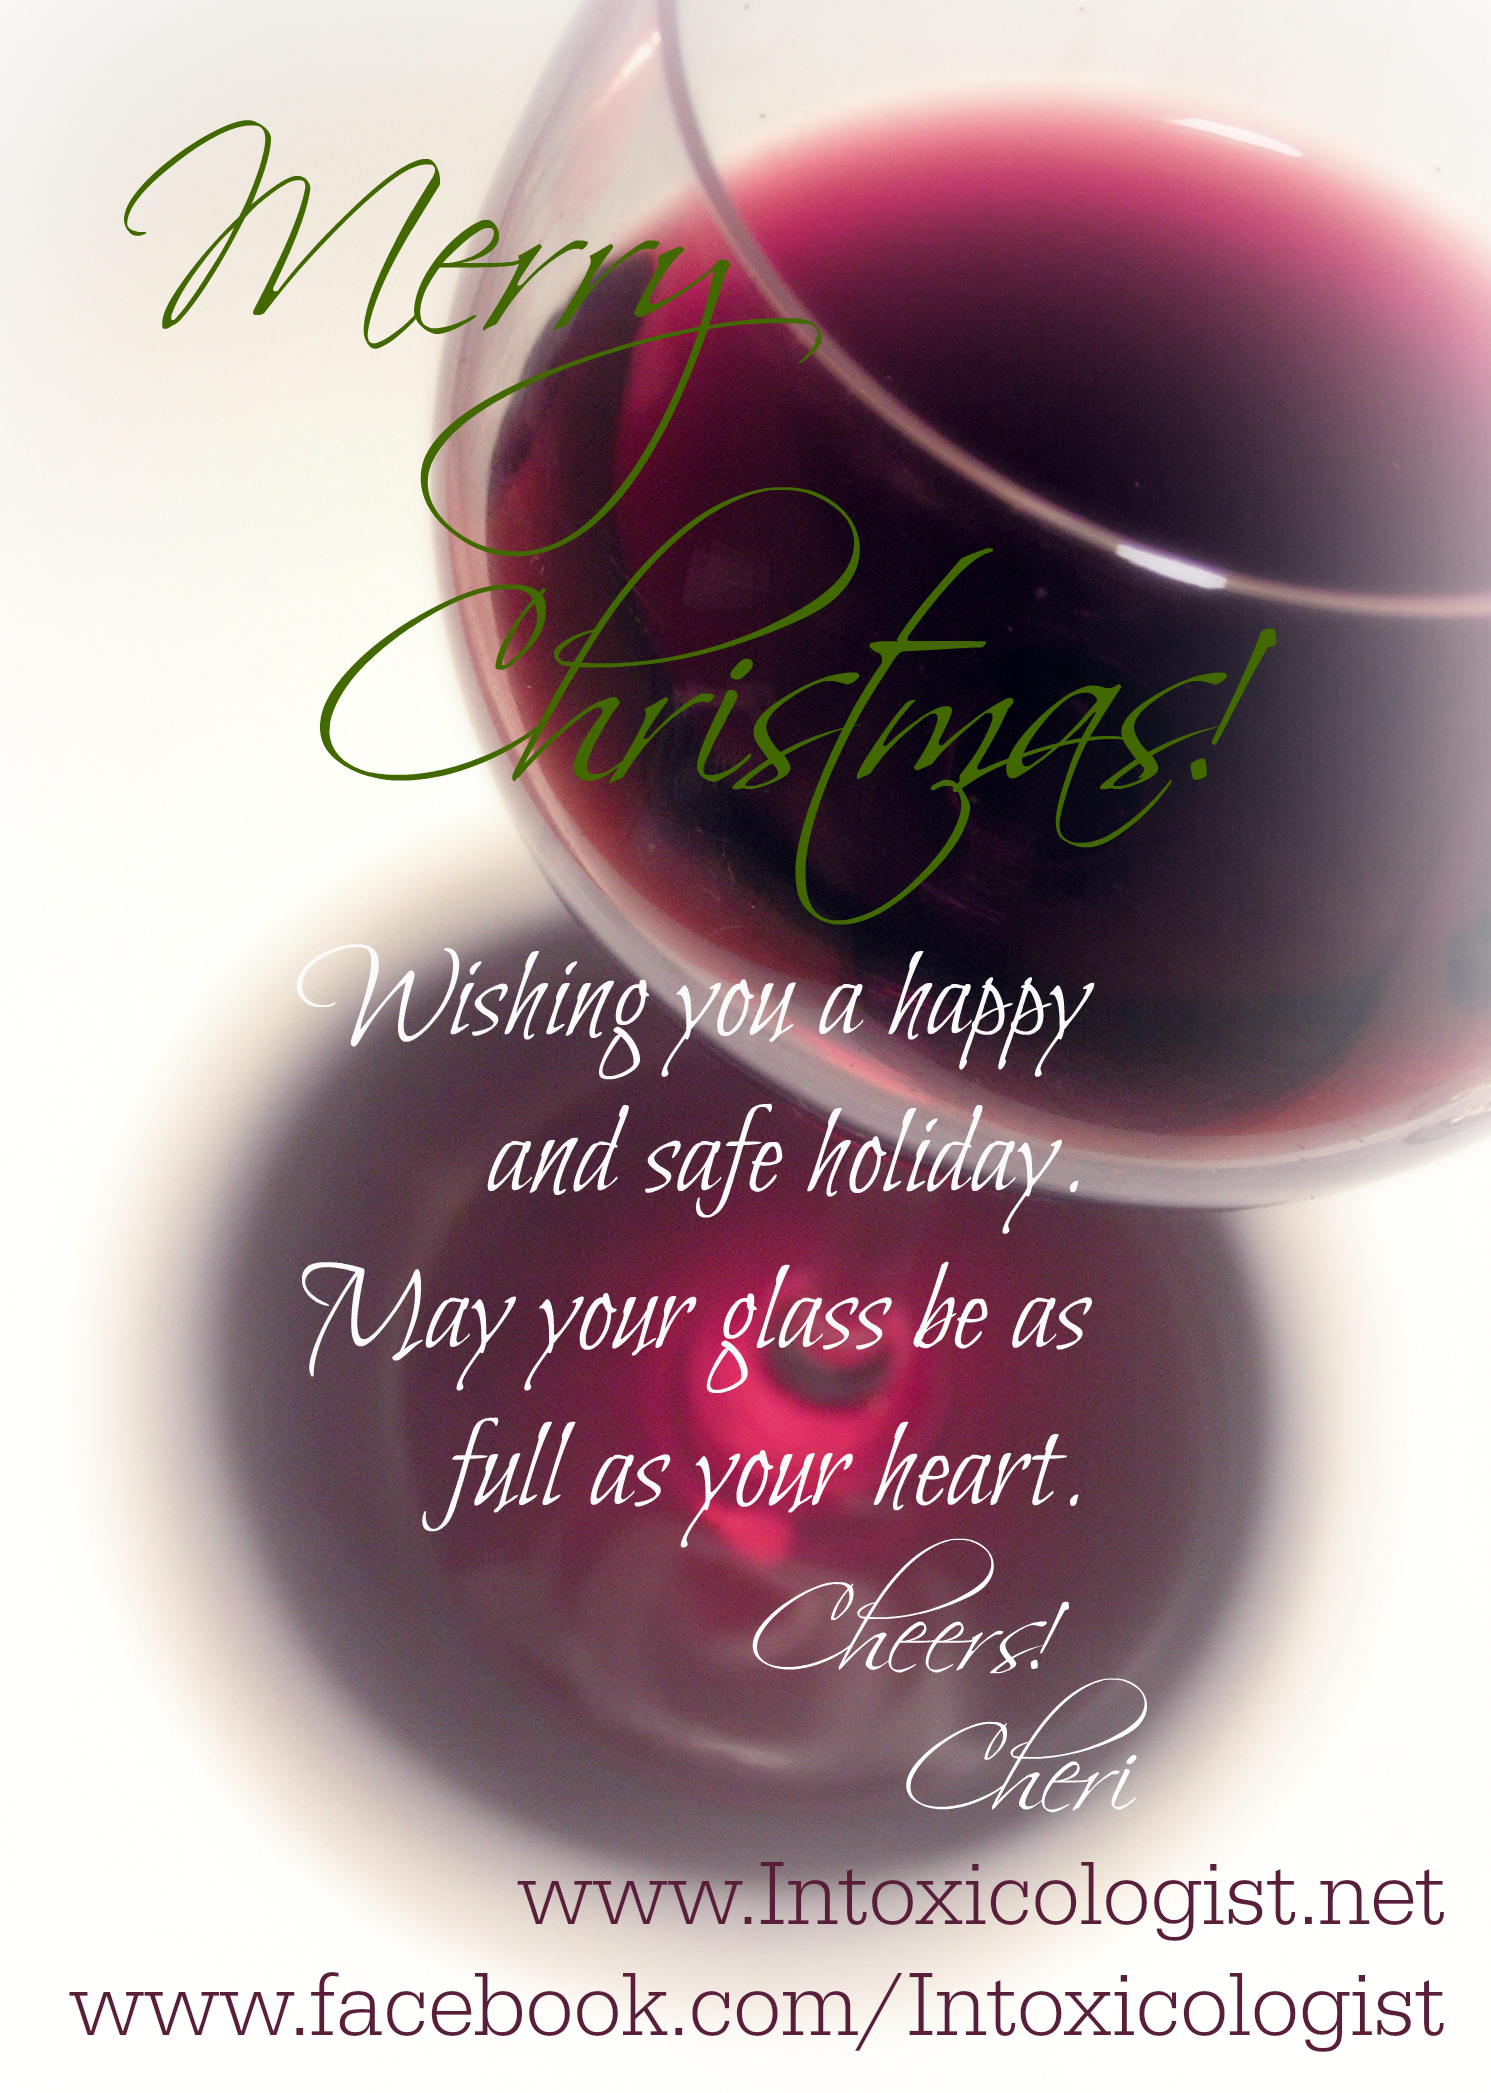 Merry Christmas! Wishing you a happy and safe holiday. May your glass be as full as your heart. ~ Cheri